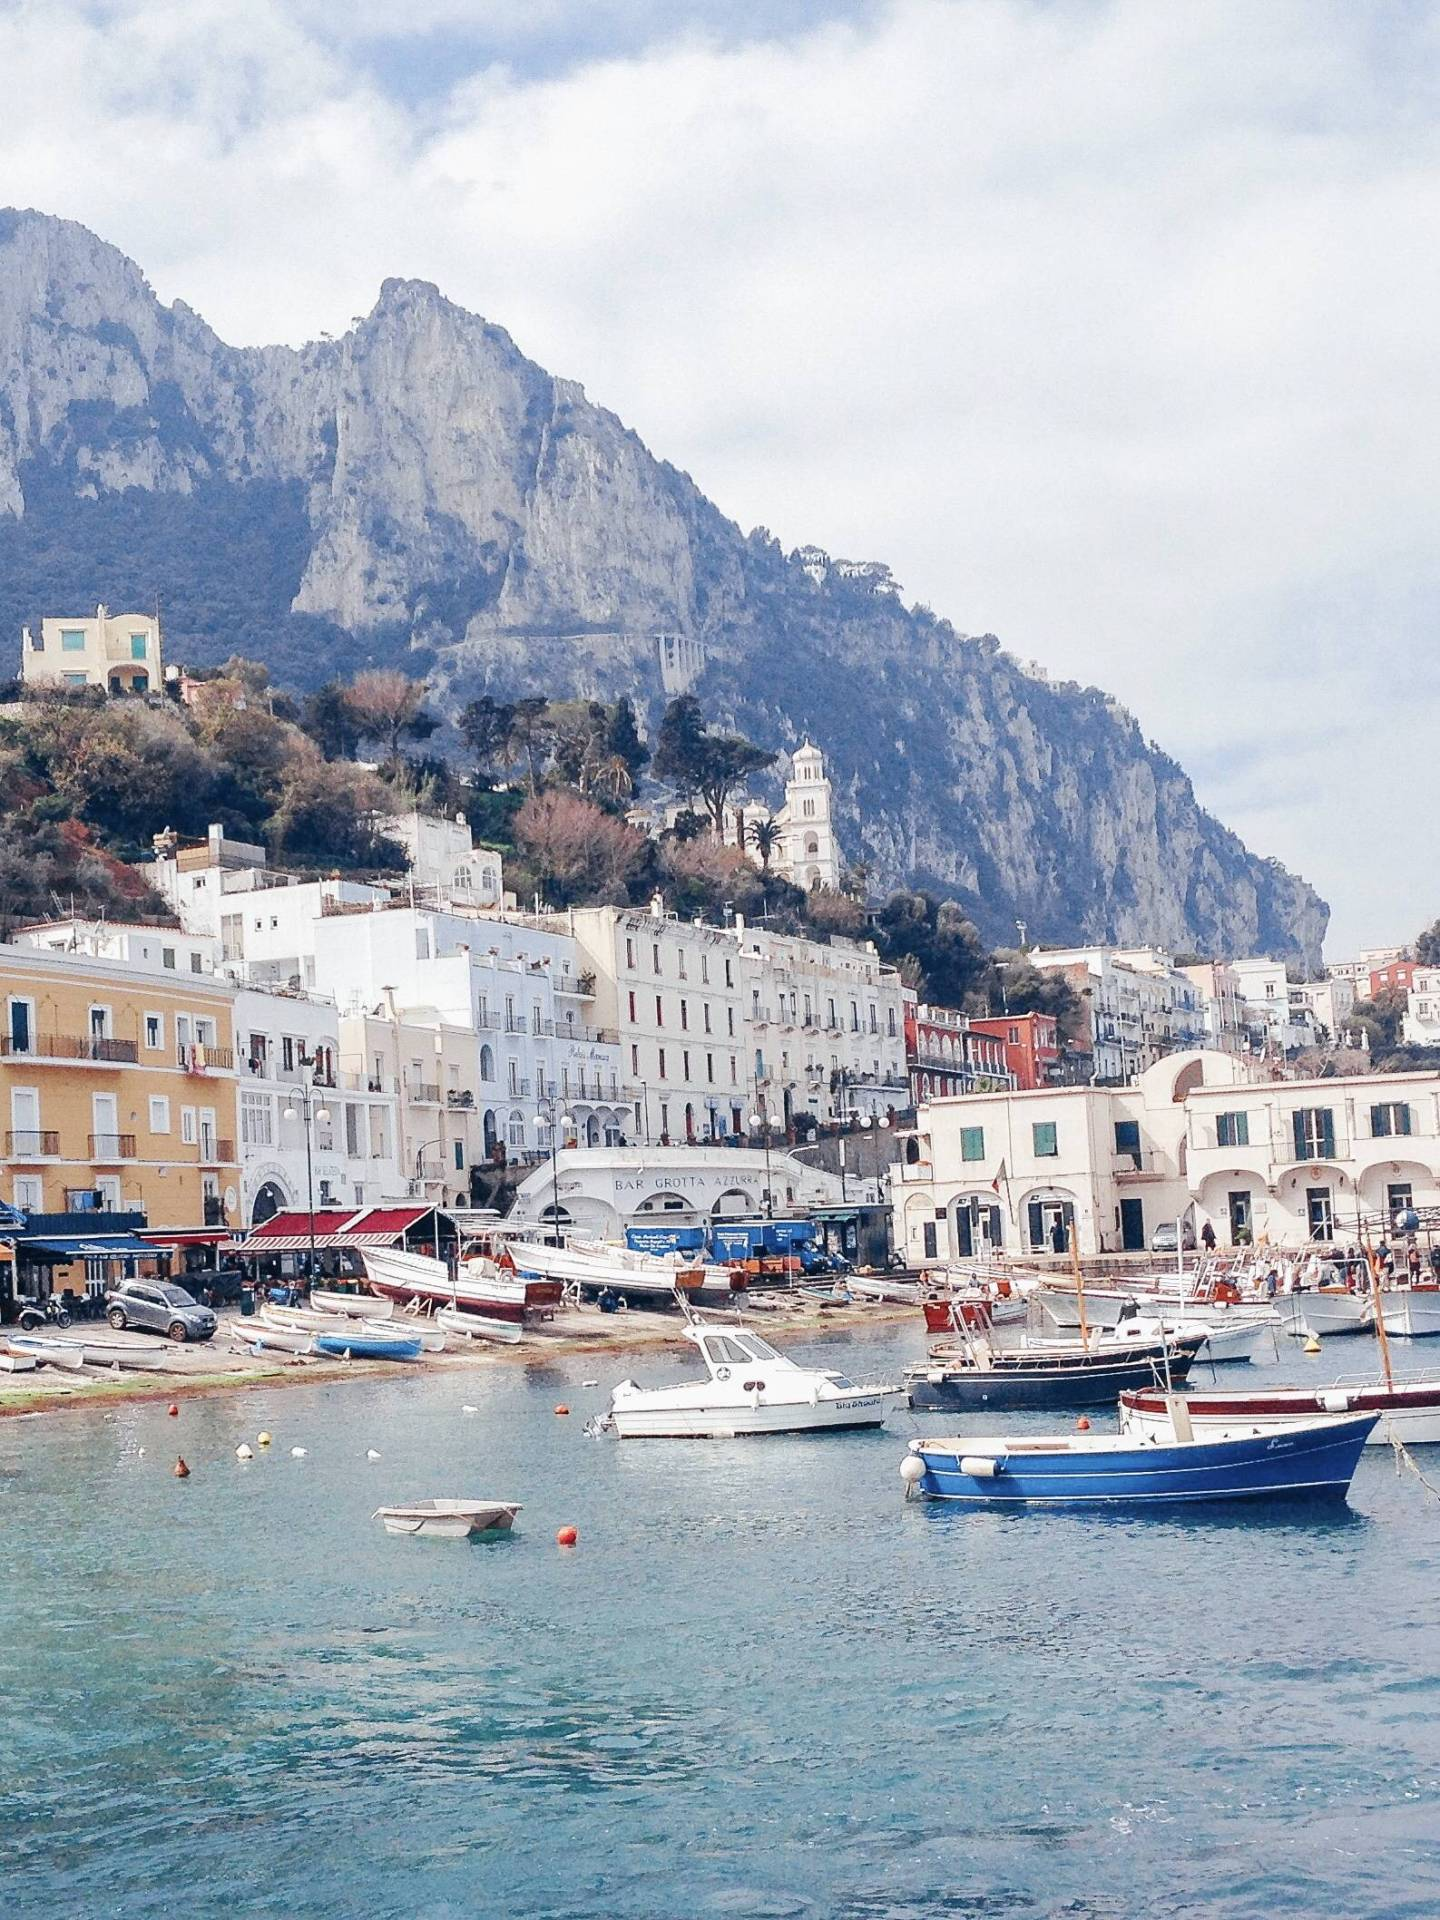 Going on what feels like week 48 of quarantine and I've been finding myself daydreaming like crazy! Here are 15 places I'm so grateful to have had the chance to visit that I've found myself mentally escaping to lately. Top of the list: Capri, Italy.